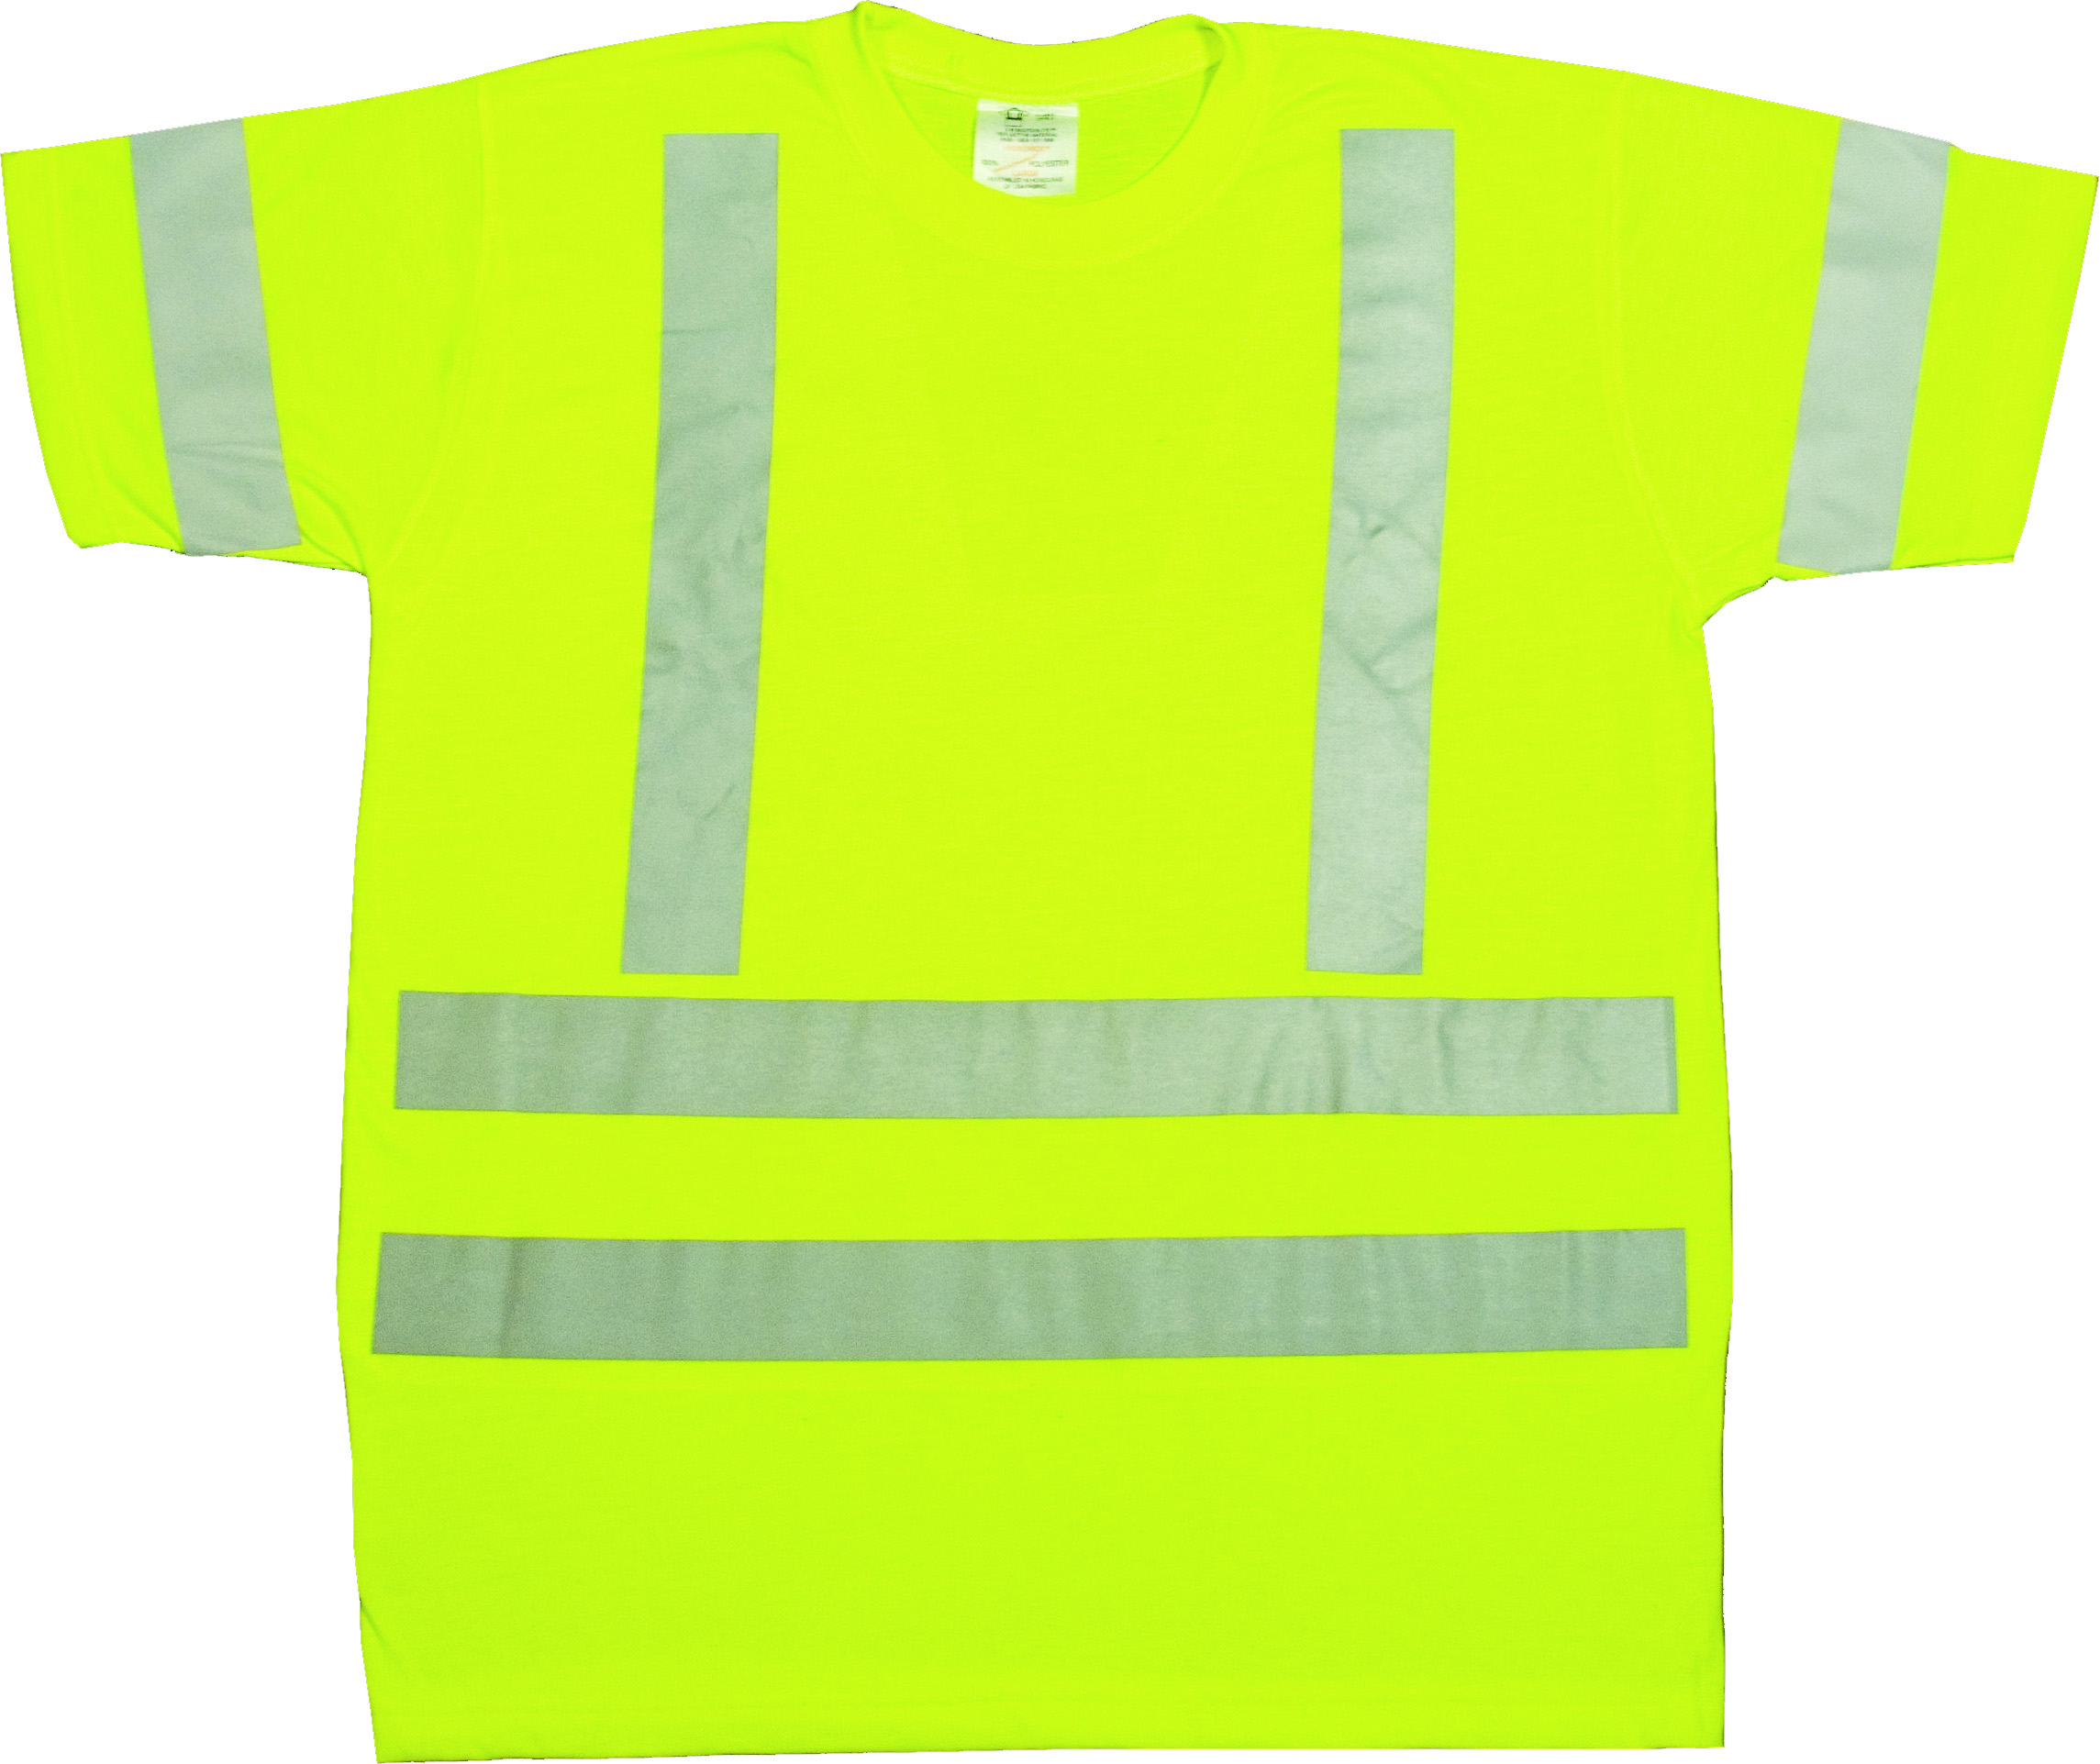 96002-0-106, ANSI Class 3 Durable Flame Retardant T-Shirt, Lime, 3XLarge, Mutual Industries